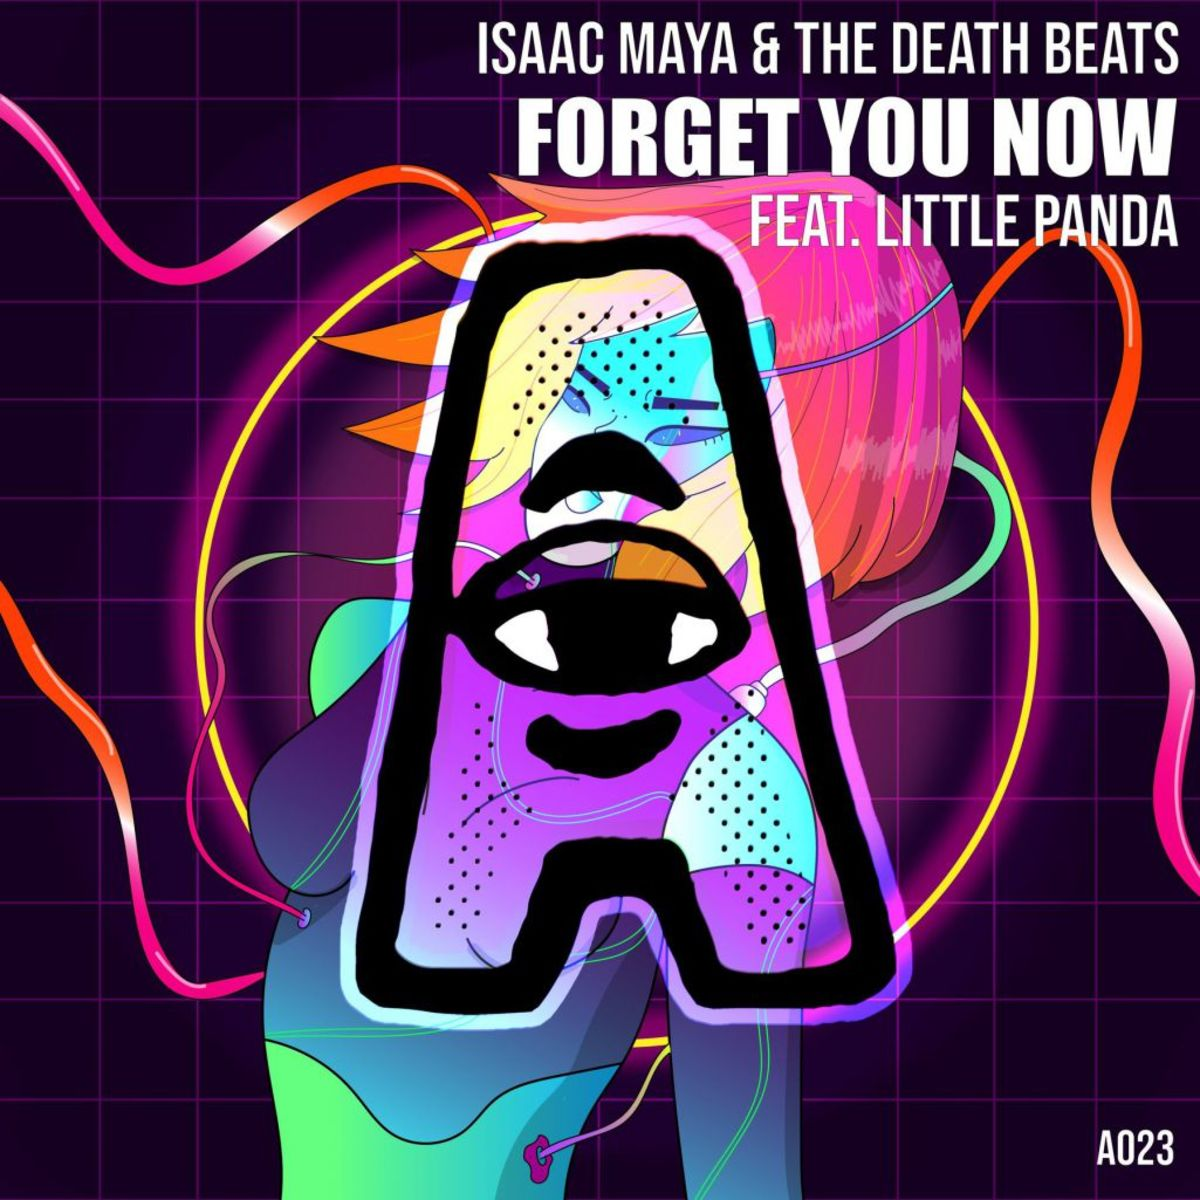 synth-single-review-forget-you-now-by-the-death-beats-with-isaac-maya-and-little-panda